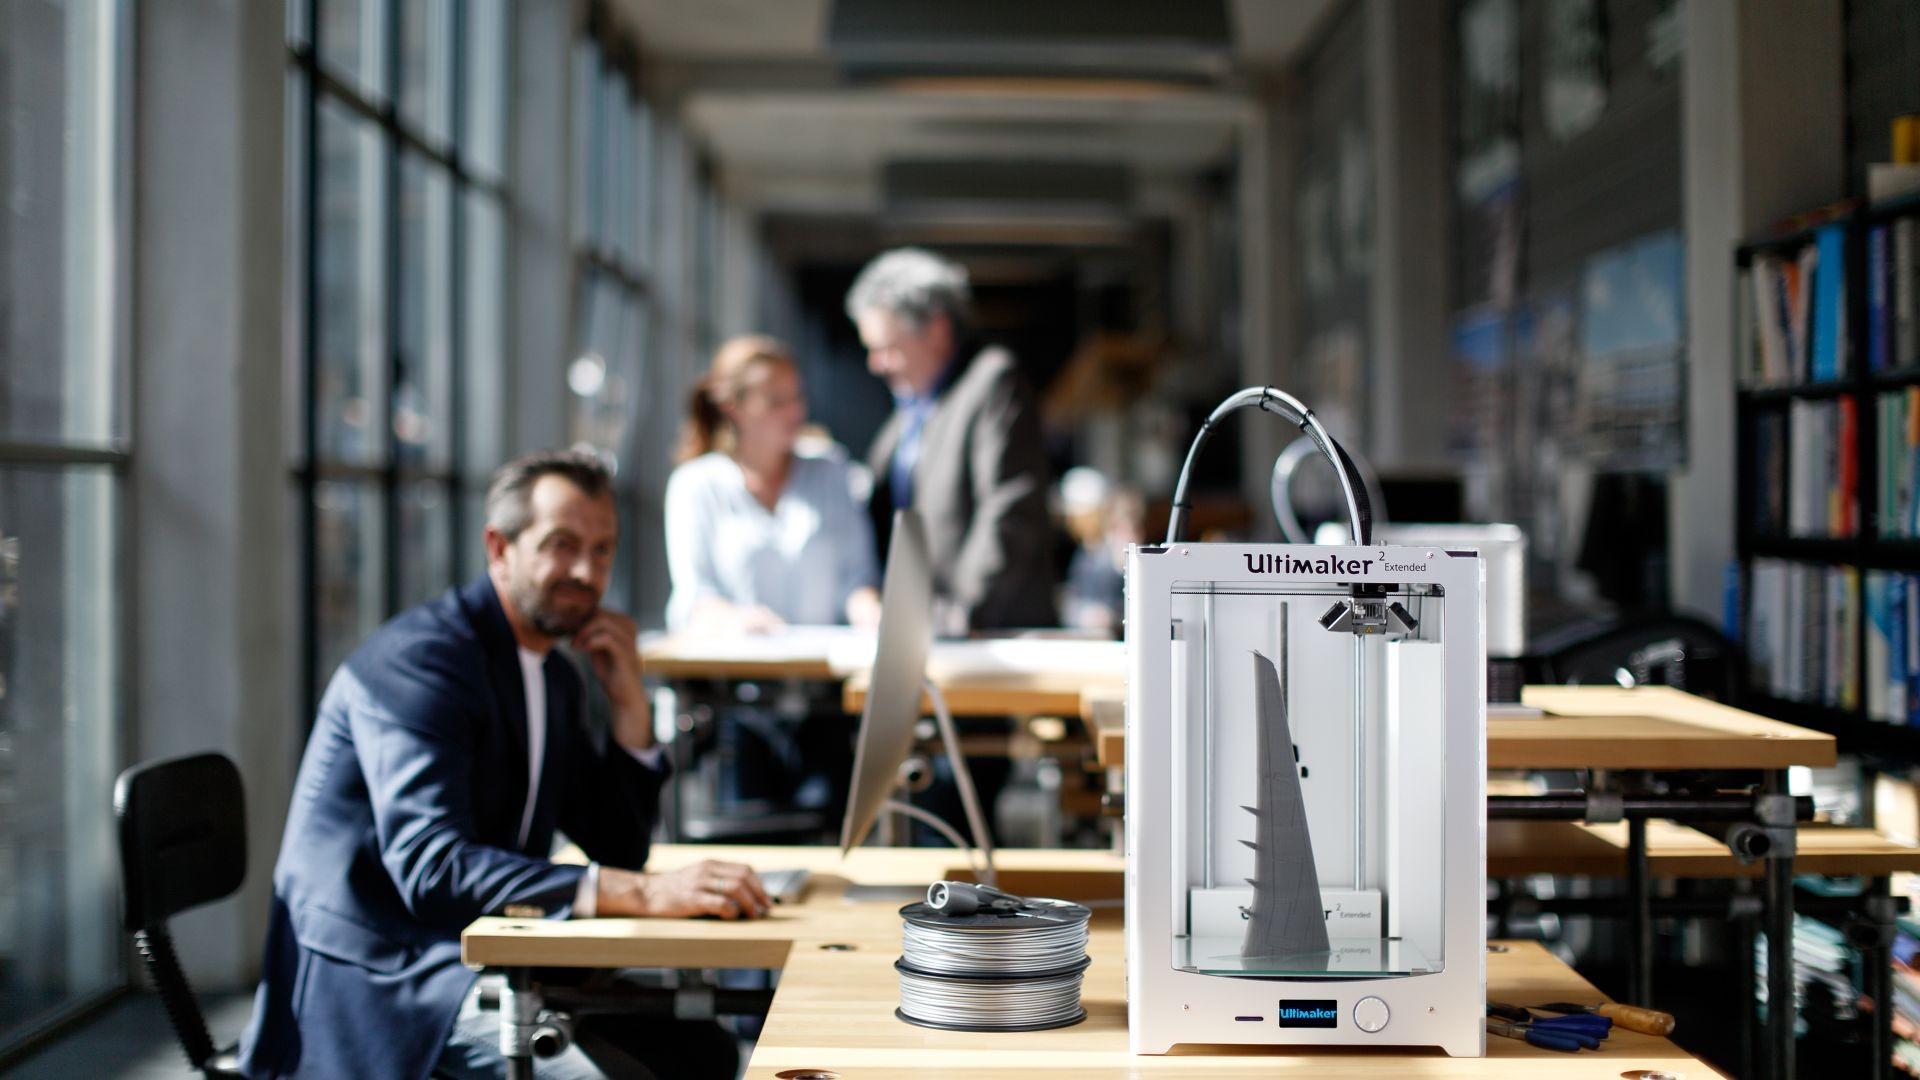 CTC GMBH evaluating Ultimaker technology for production improvement with 3D printing